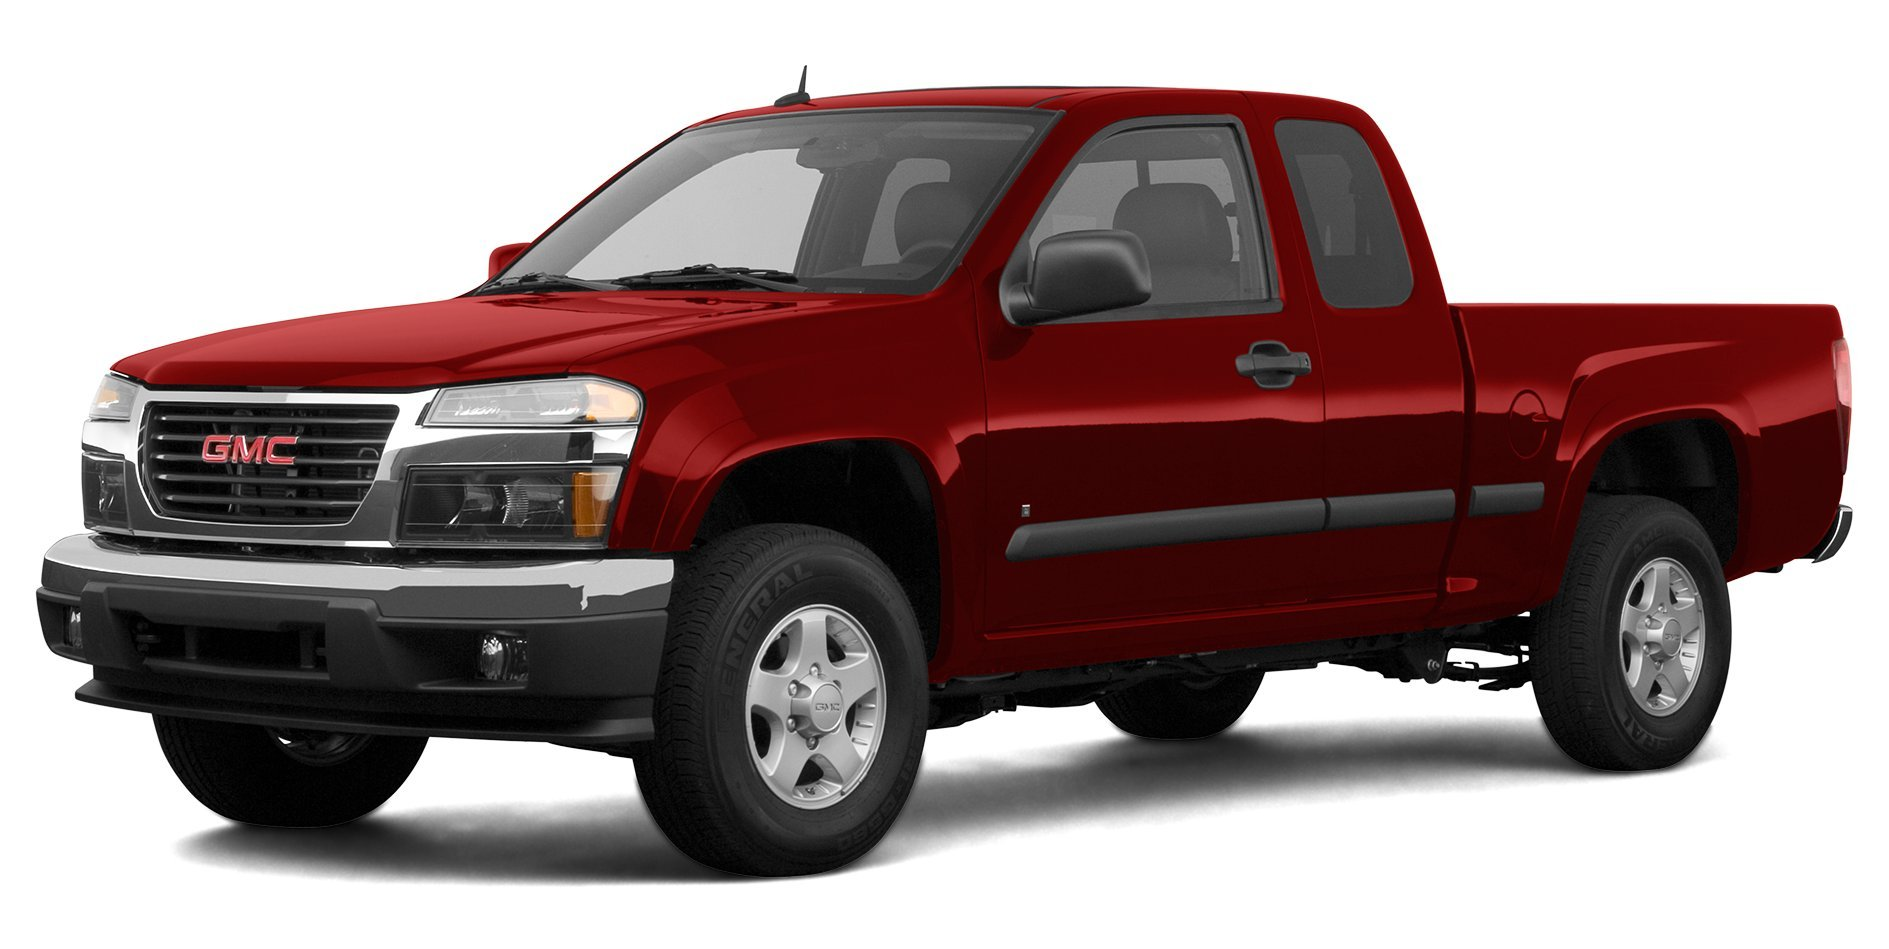 "... 2007 GMC Canyon SLE2, 4-Wheel Drive Extended Cab 125.9"". 2007 Mazda  B4000, Cab Plus4 Automatic Transmission ..."